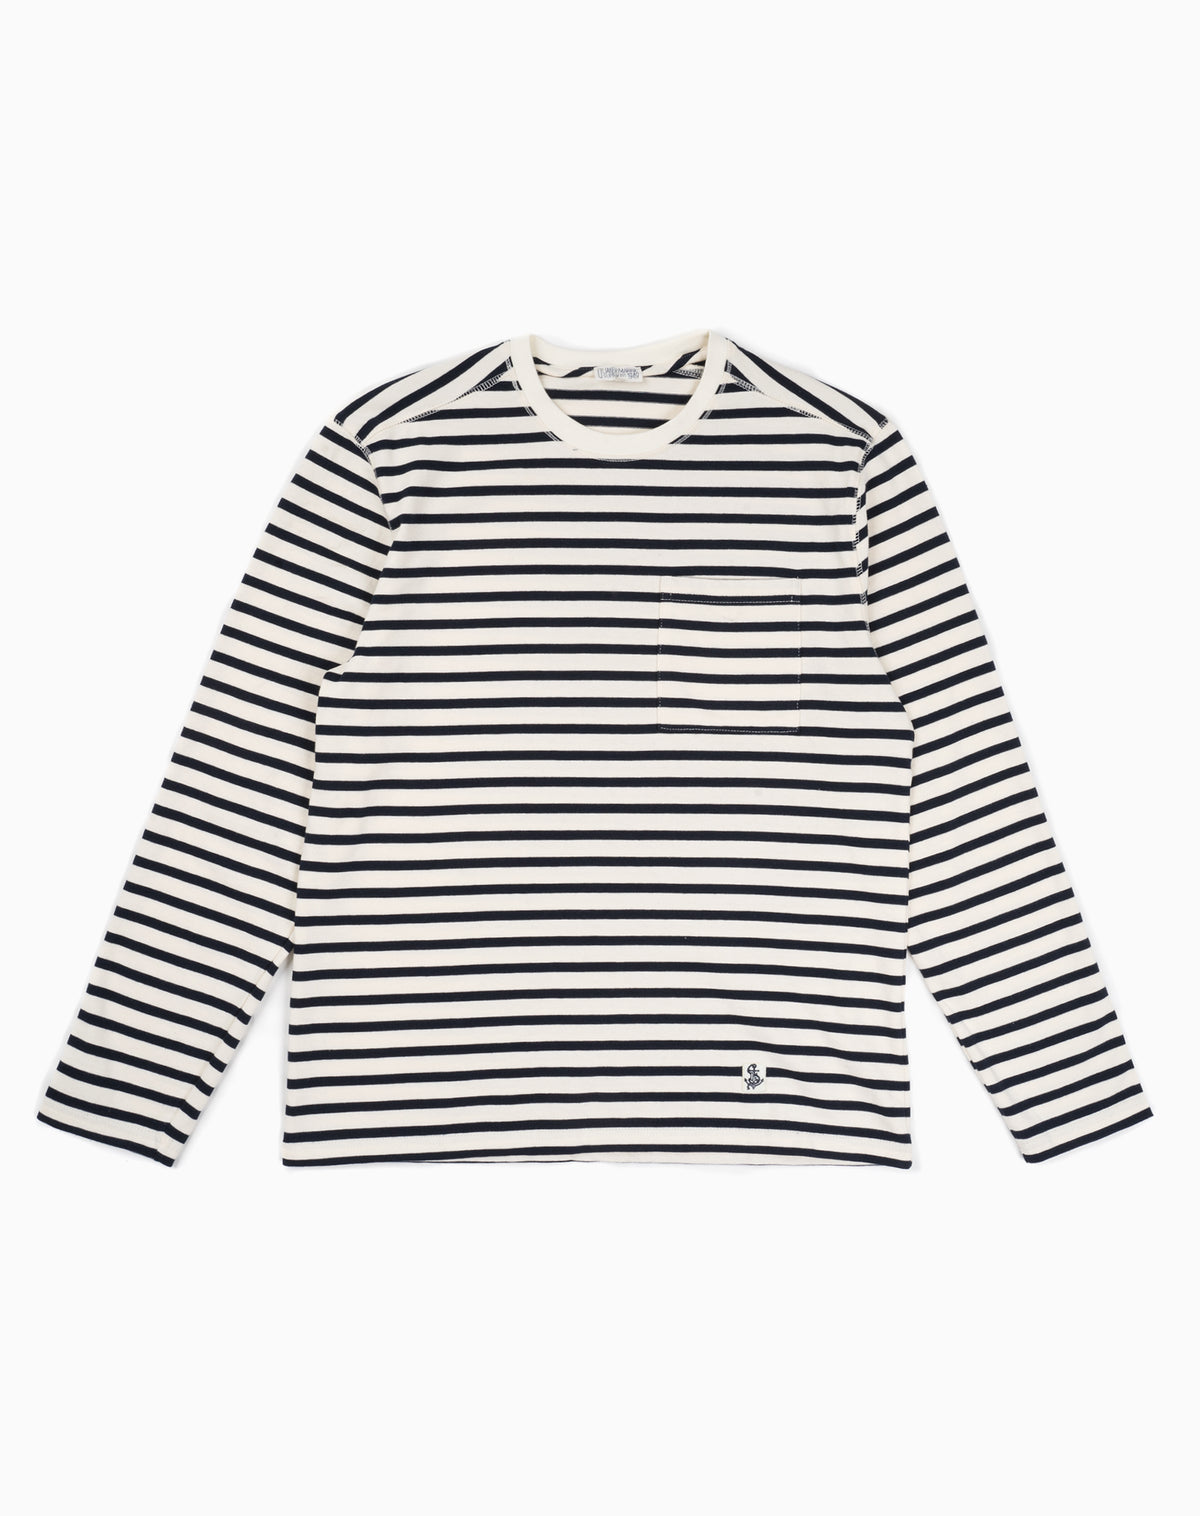 Mariner Knit Shirt in Navy/Cream